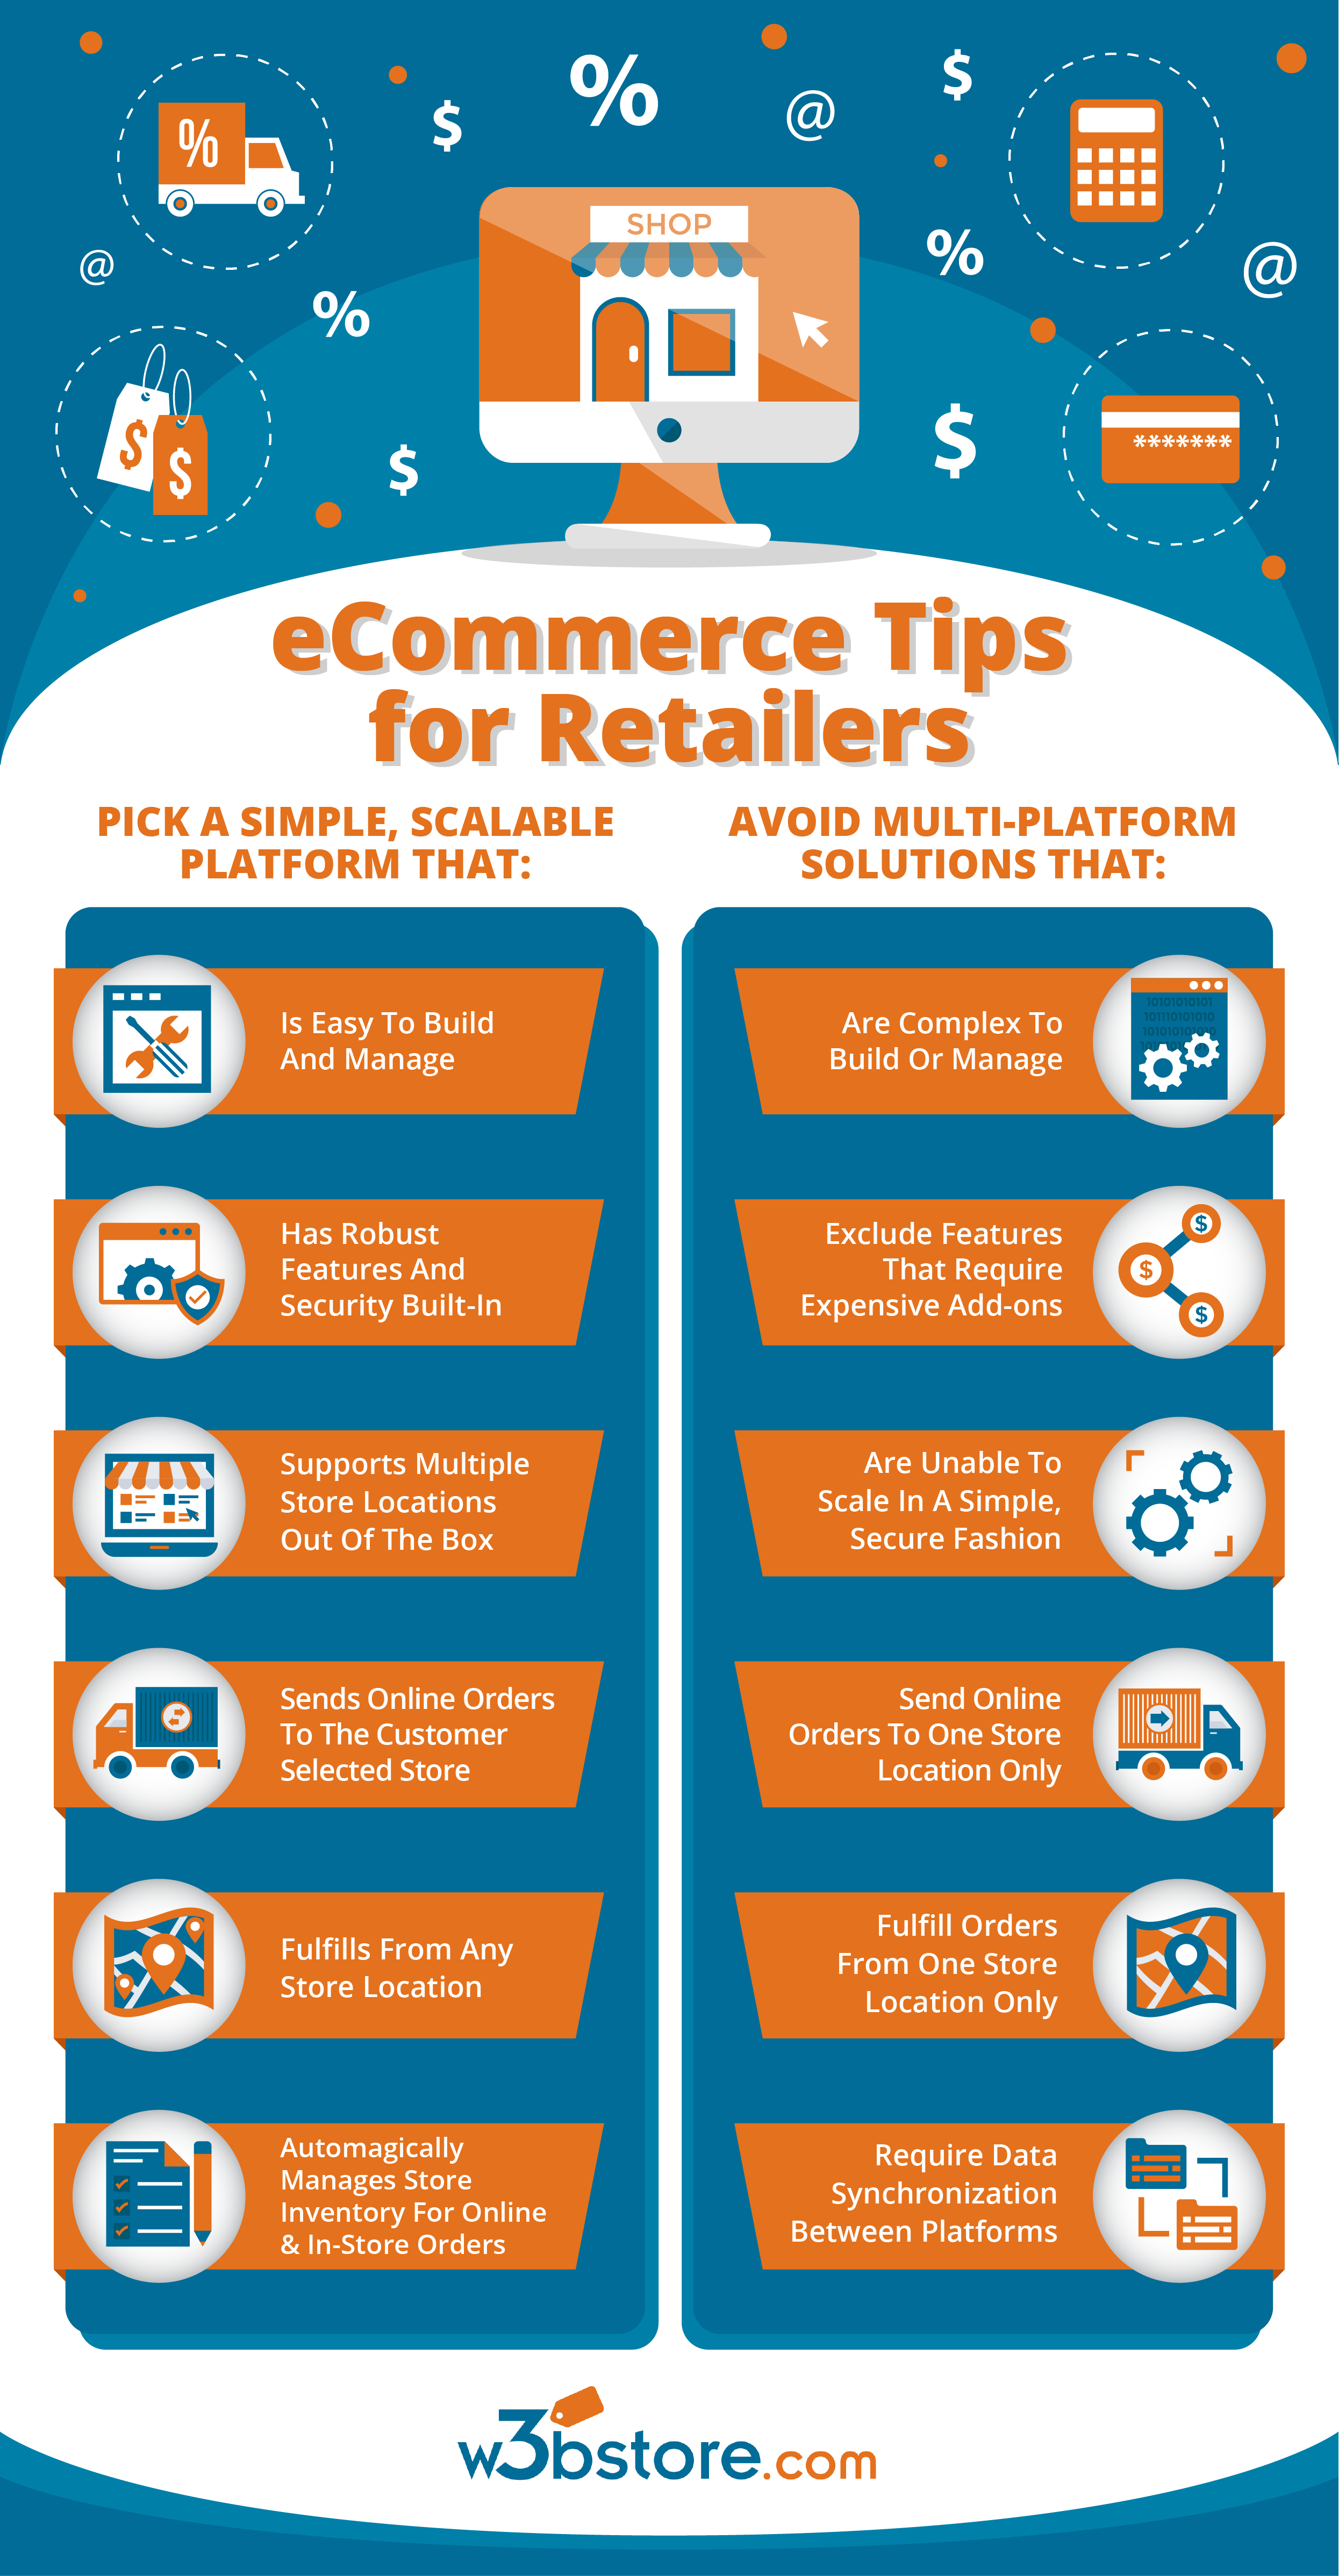 ecommerce tips for retailers